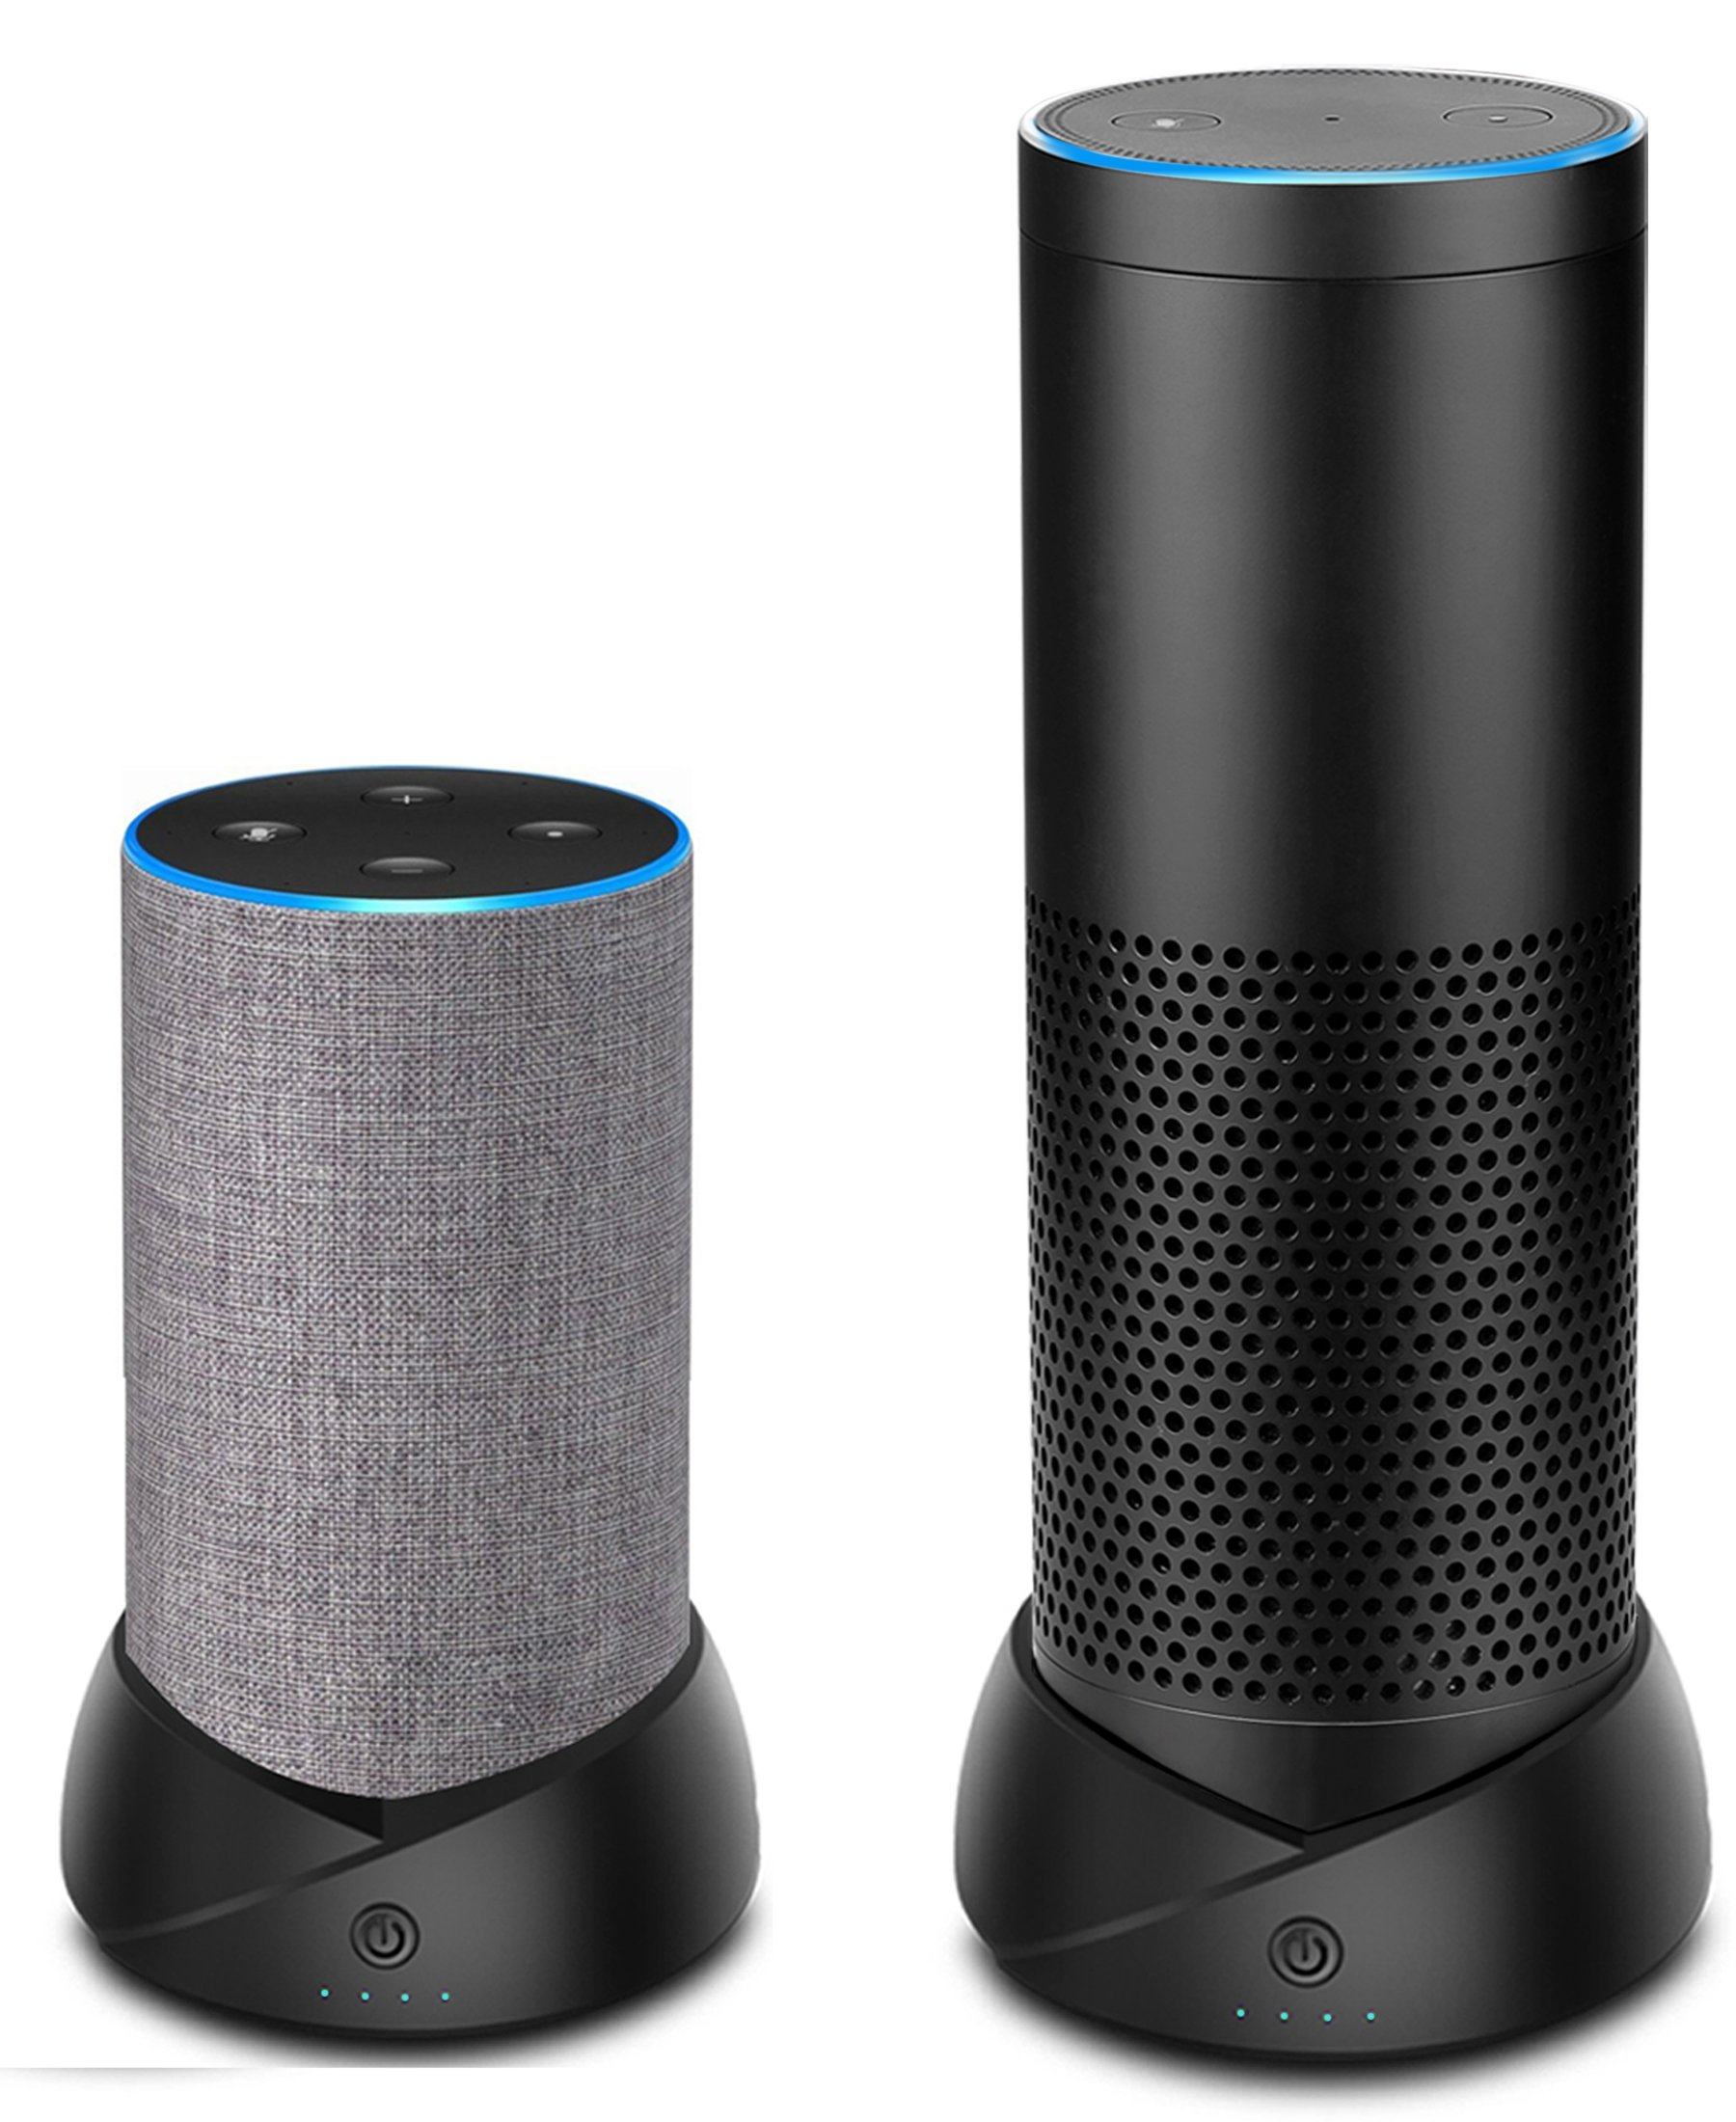 Portable Battery Base for Amazon Echo (2nd Generation) and Echo Plus,Battery Base Makes Them Portable